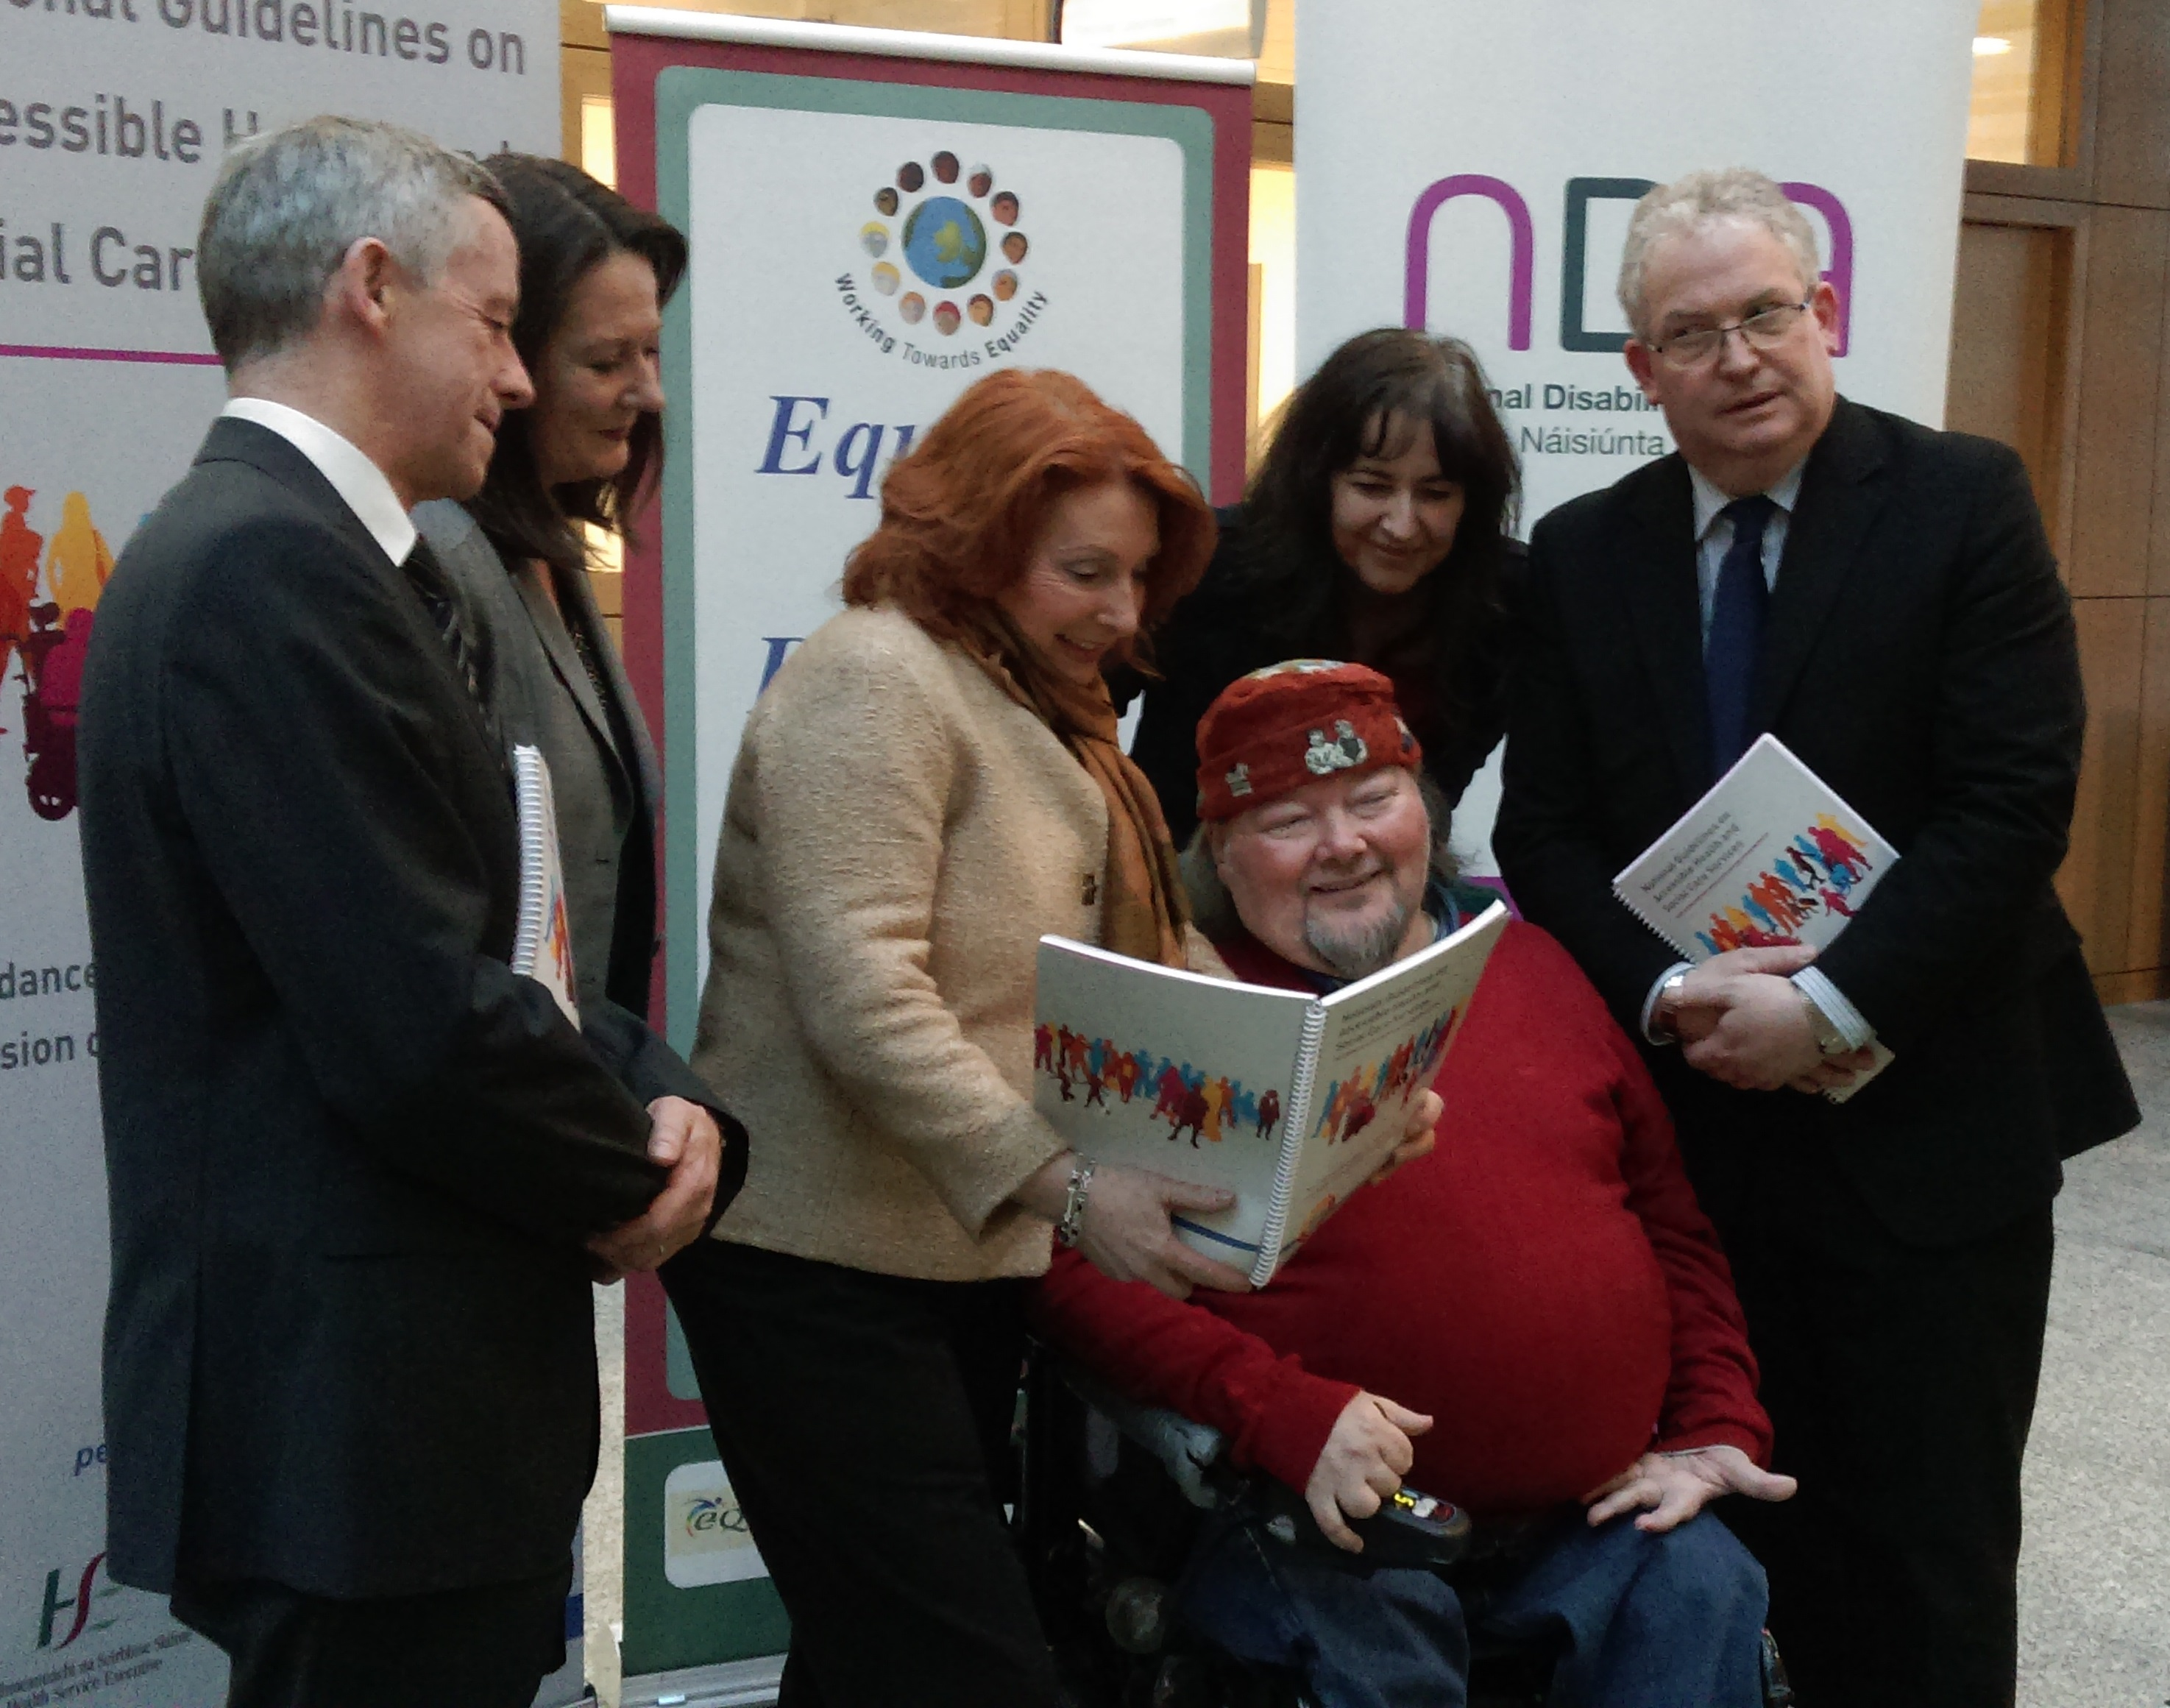 left to right: Dr Philip Crowley (HSE); Siobhan Barron (NDA), Minister Kathleen Lynch; Martin Naughton; Dr Mary Day (Mater Hospital); and Tony O'Brien (HSE)